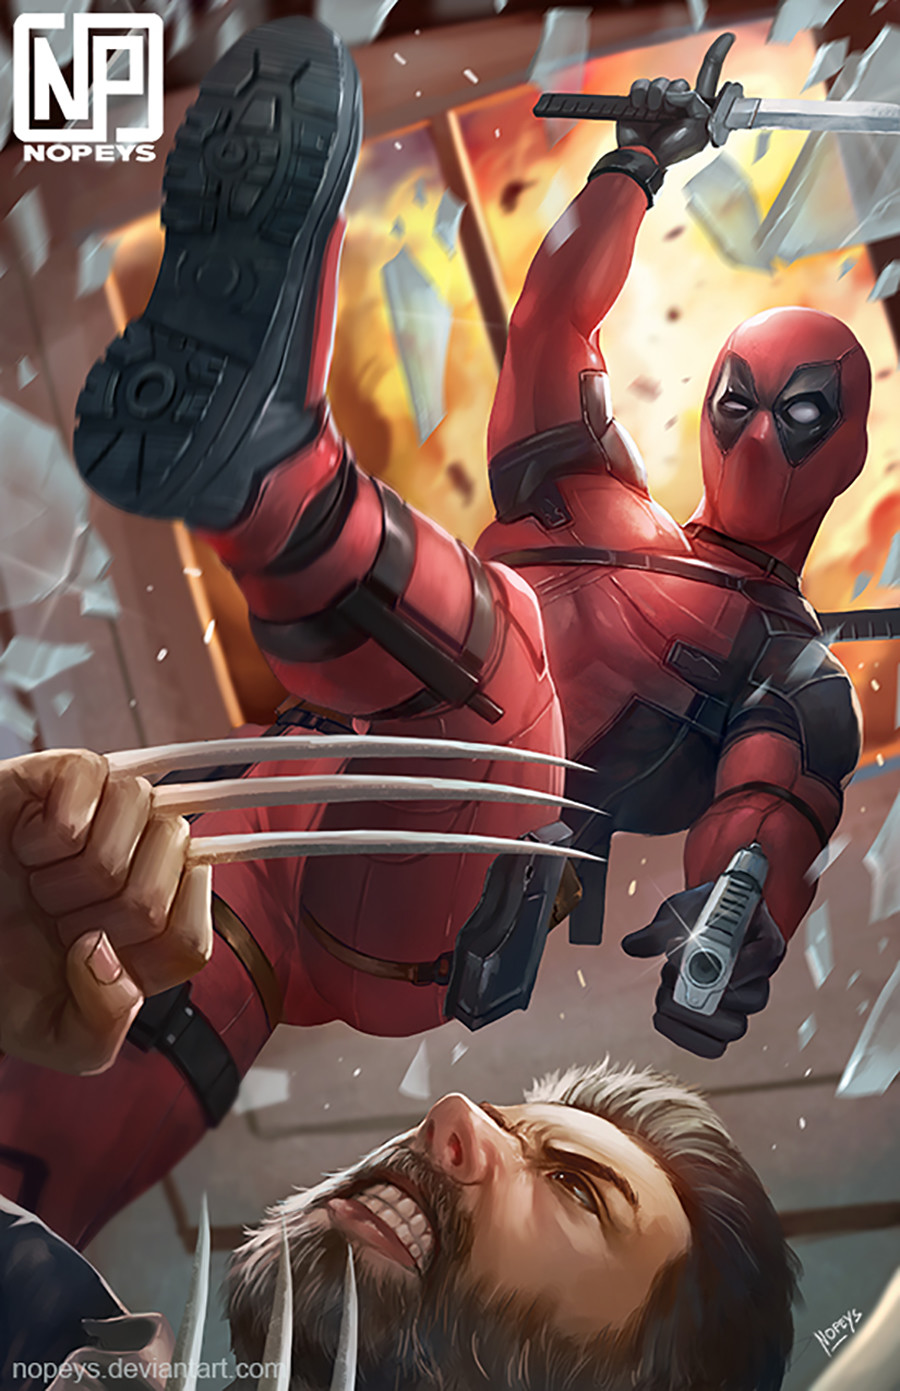 Nopeys norman de mesa deadpool9merged